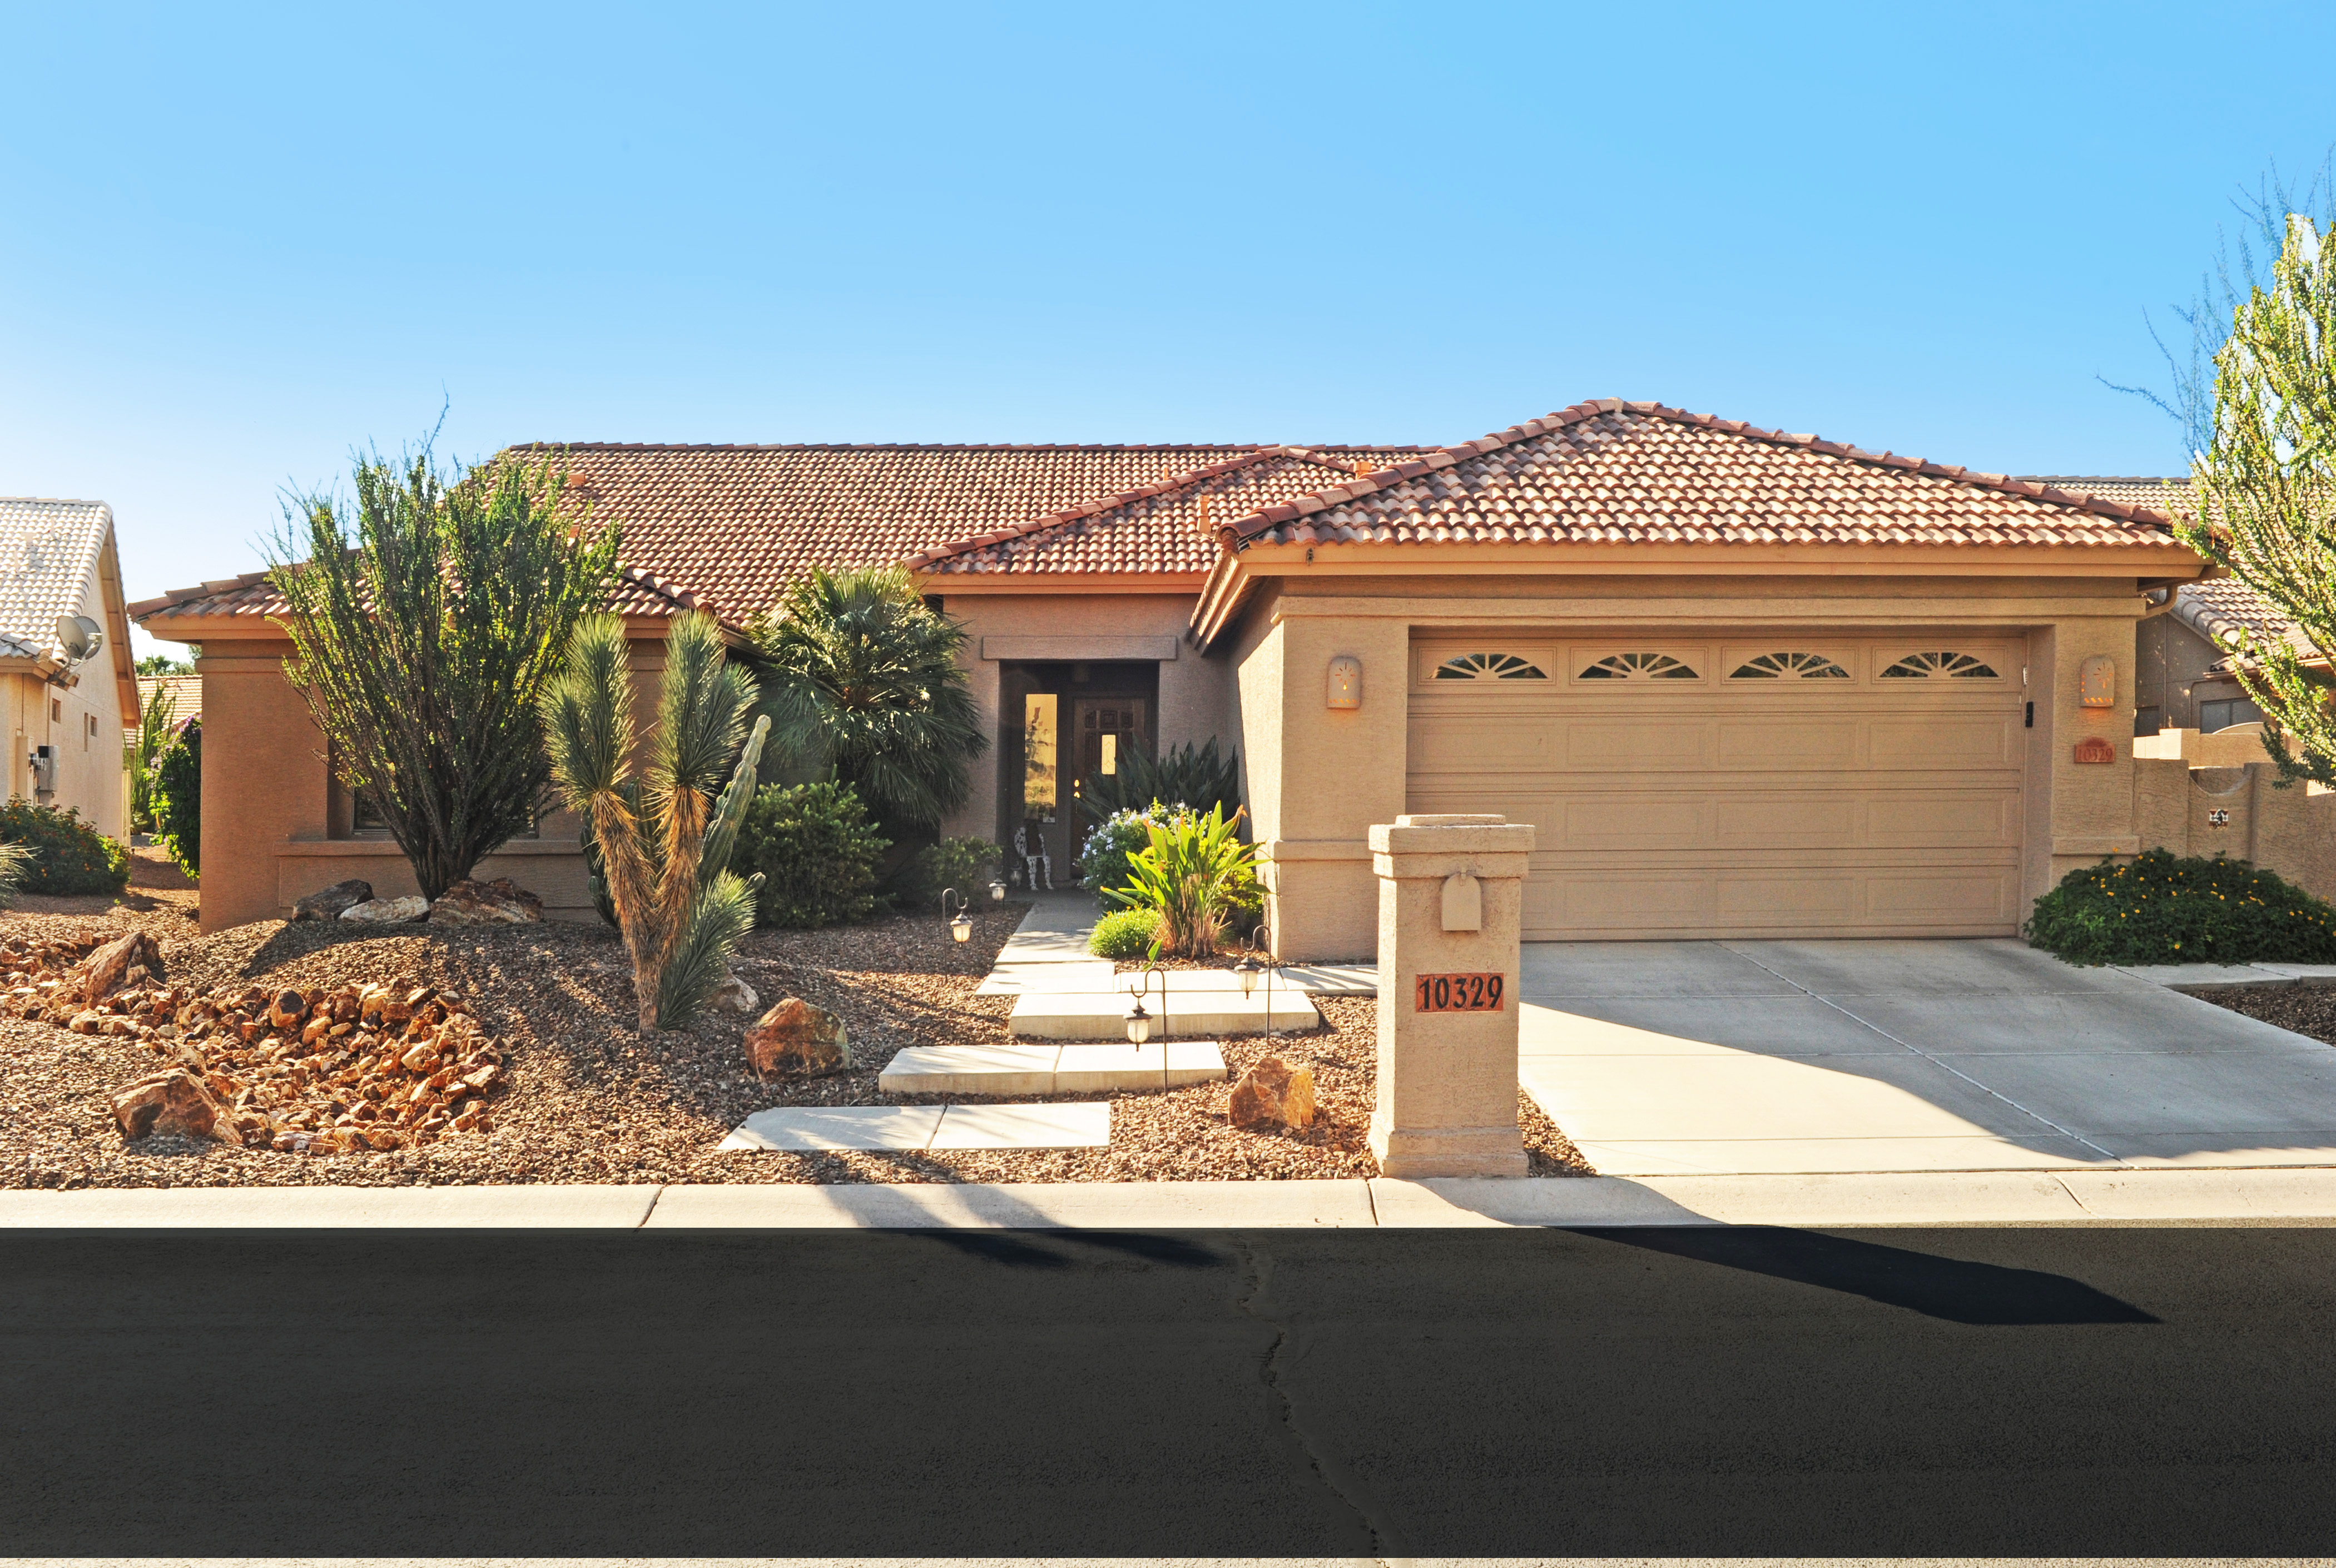 10329 sunridge sun lakes az oakwood home for sale the kolb team